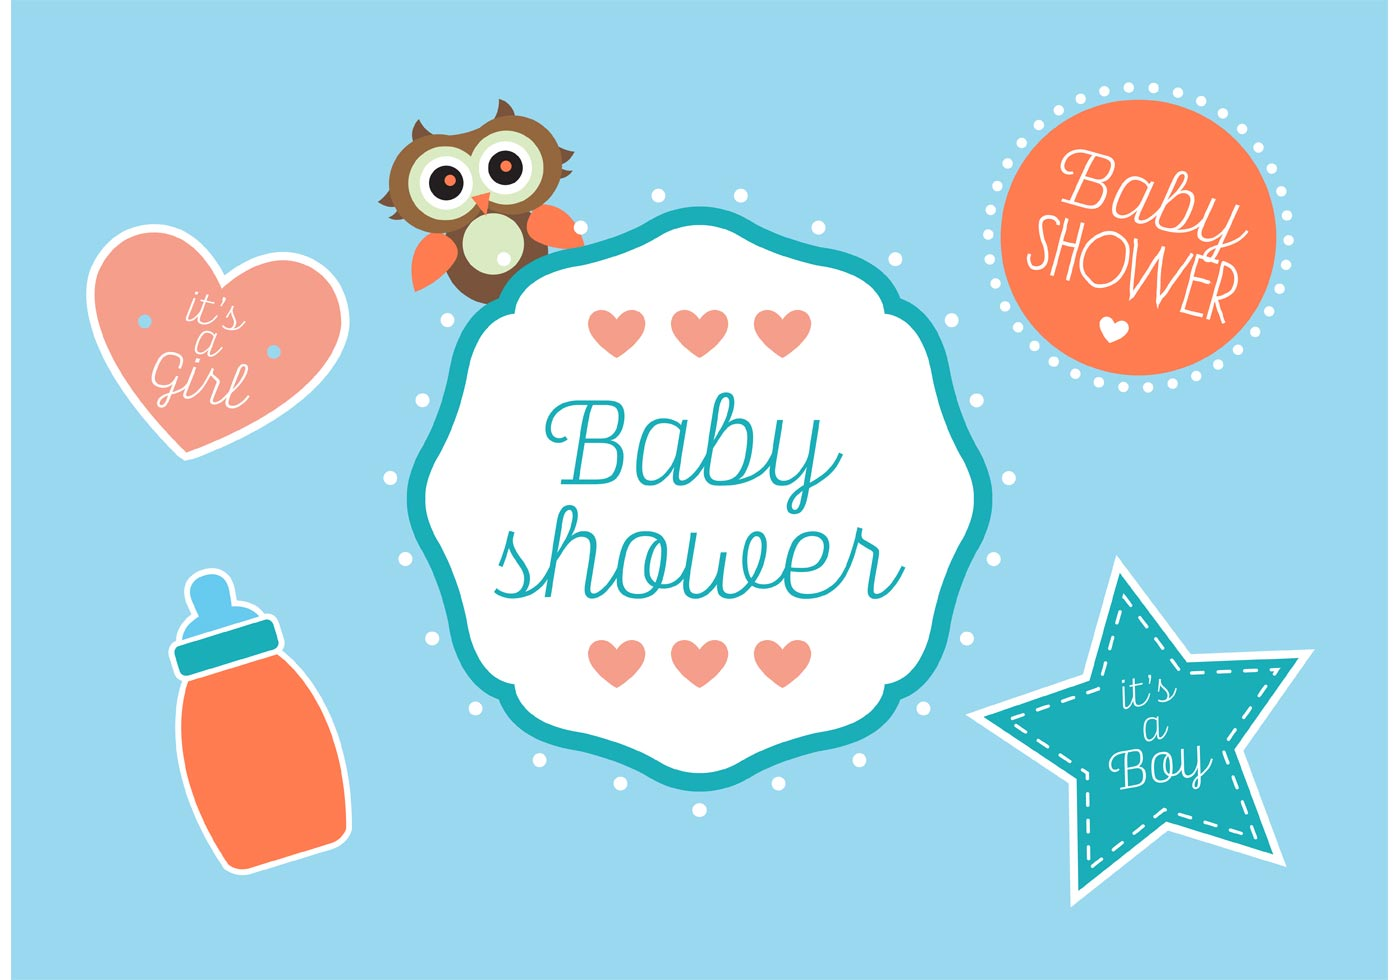 Cute Elephant Cartoon Wallpapers Baby Shower Vectors Download Free Vector Art Stock